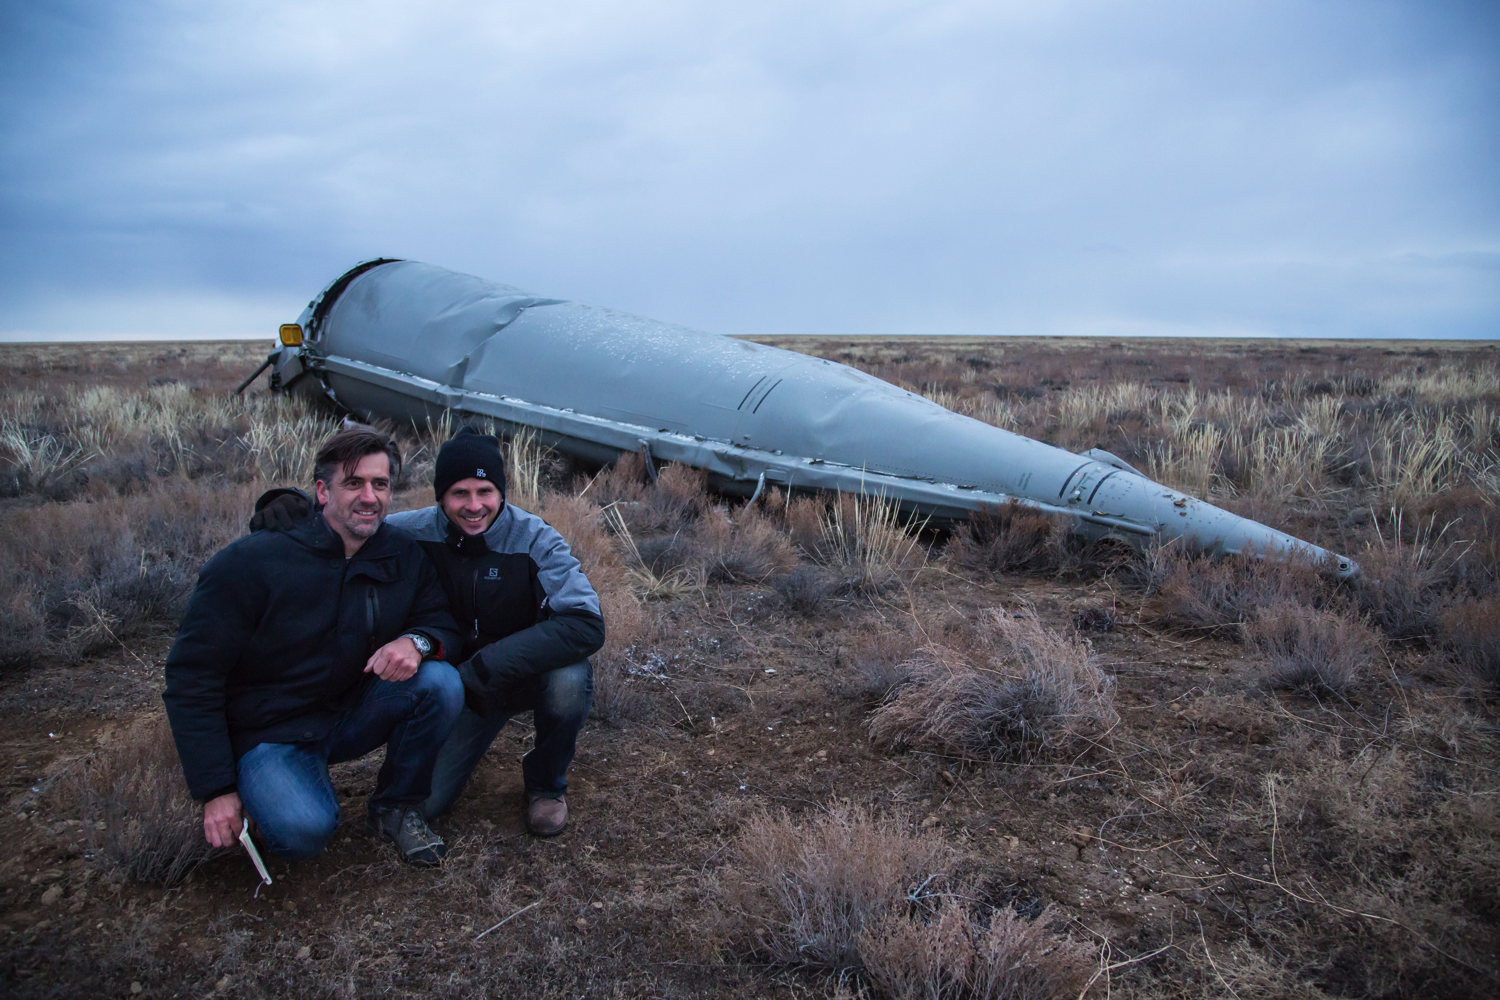 Marco & Patrick after the rocket rescue (Soyuz MS-02)